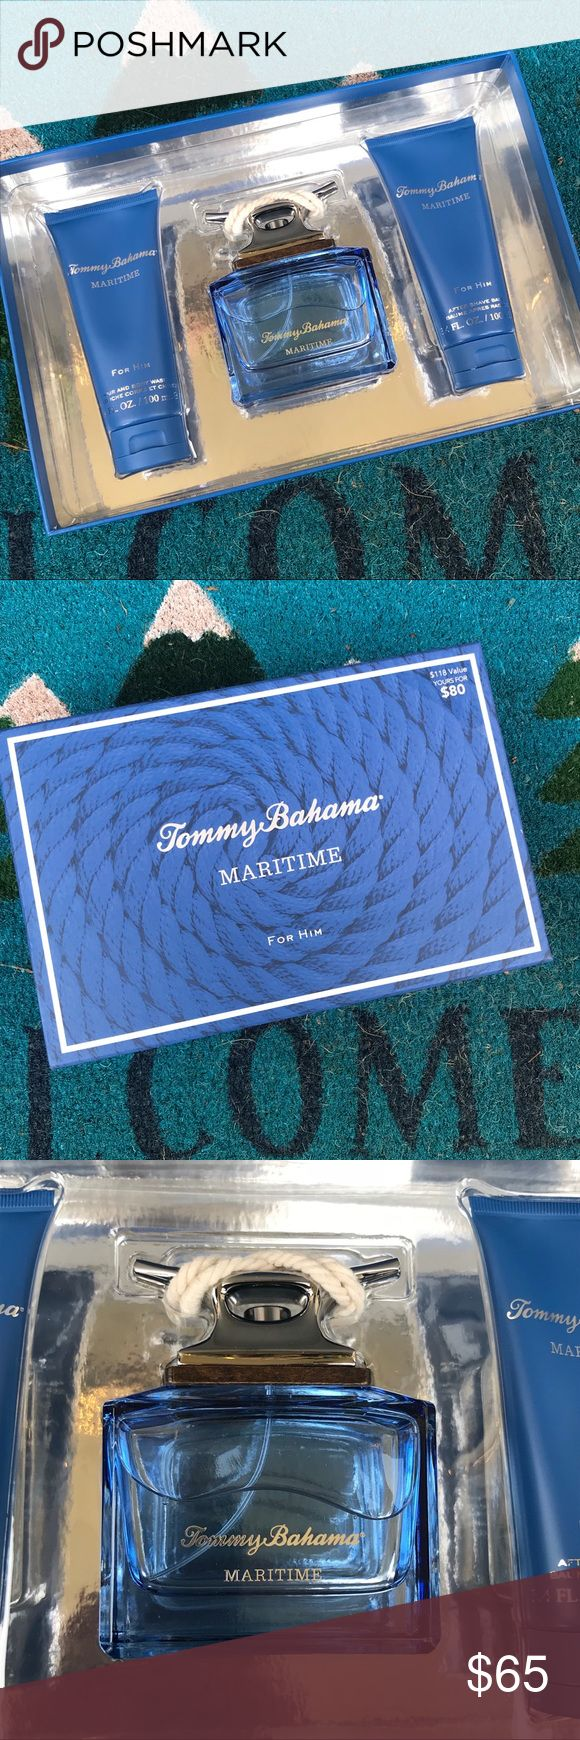 Tommy Bahama Maritime 3PC Set for Men cologne New aromatic marine scent for men:notes of bergamot, pink pepper, Clary sage, lavender and water lily to create the fresh, aquatic scent. This set includes a 4.2 ounce bottle of eau de cologne spray, 3.4 ounce hair and body wash and a 3.4 ounce after shave balm. I ship quickly and from a smoke free home. Tommy Bahama Other